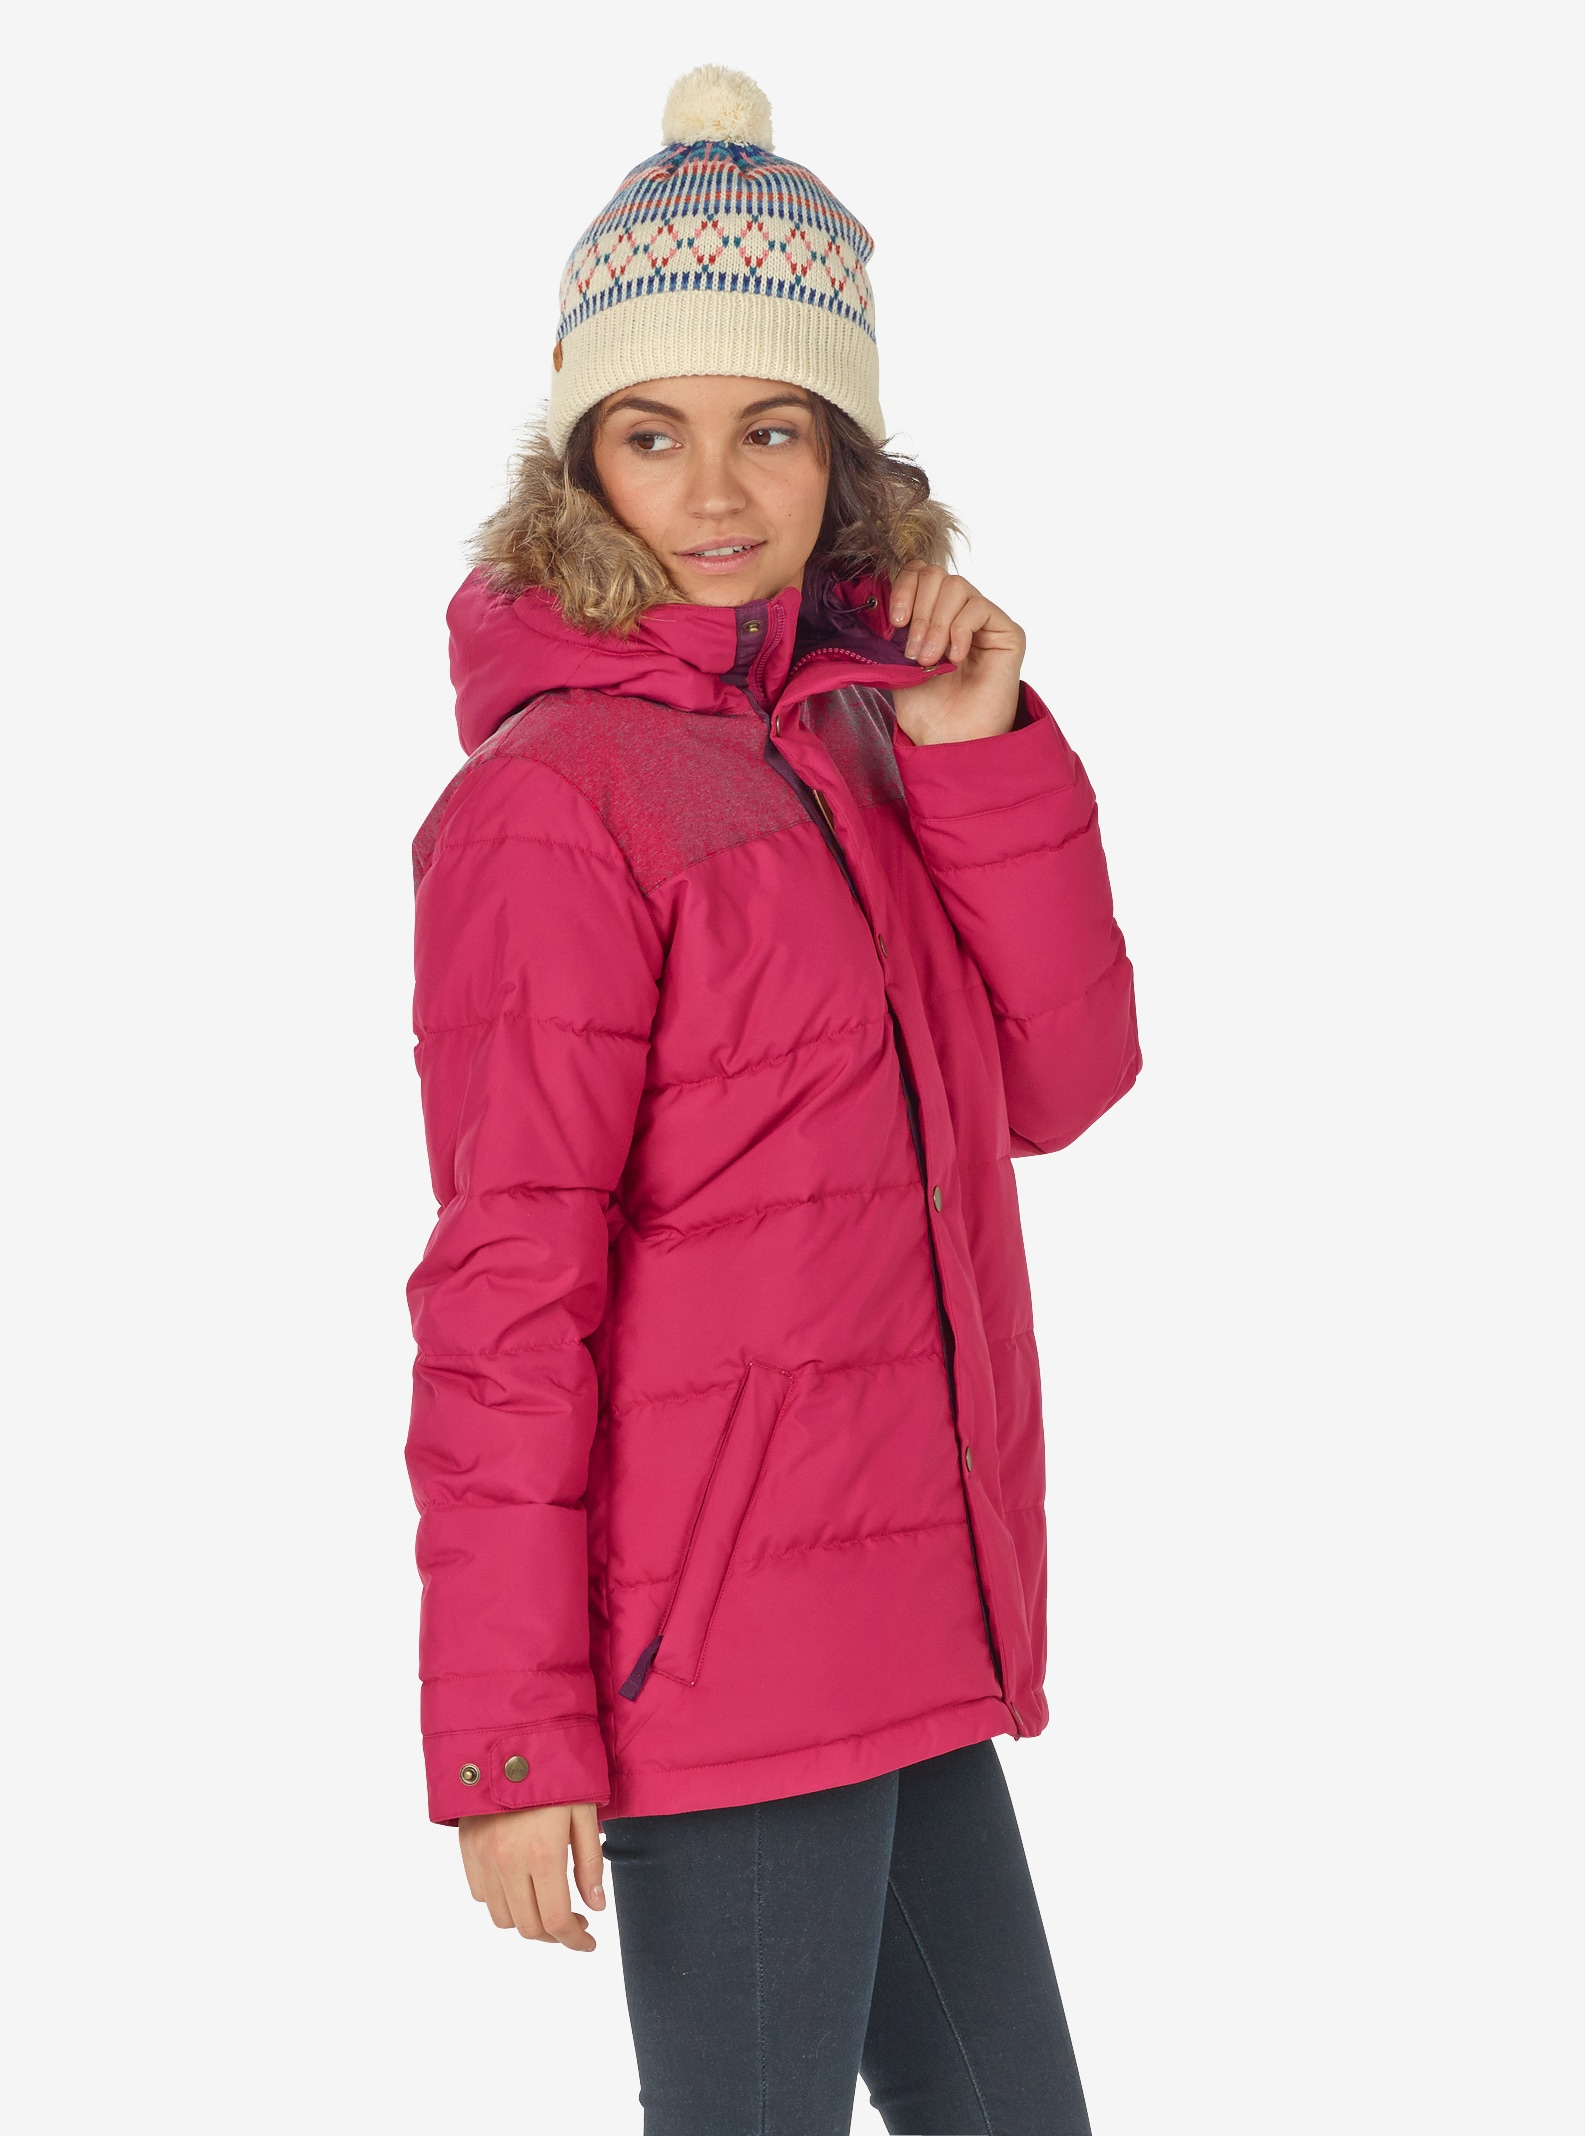 Women's Burton Traverse Jacket shown in Starling / Anemone